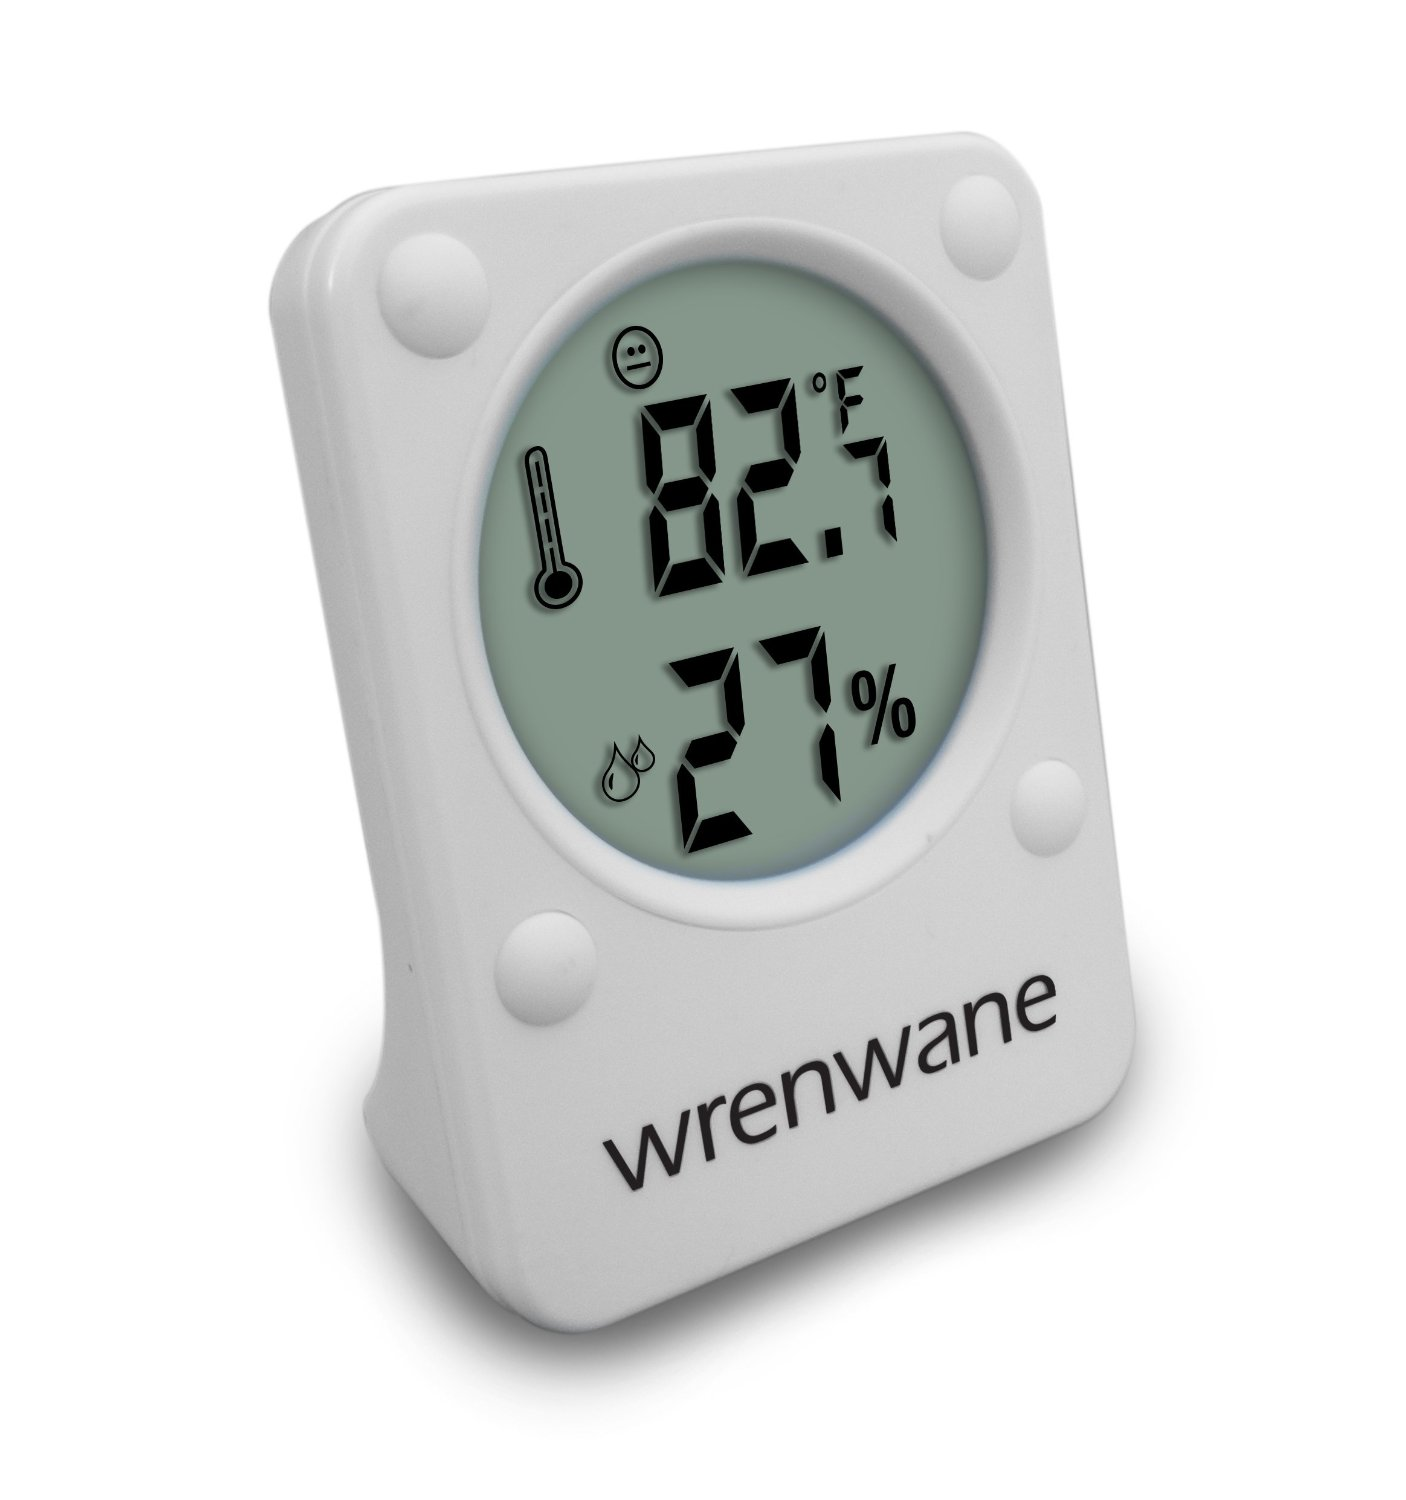 the Wrenwane Hygrometer Humidity Monitor Indoor Room Thermometer Fahrenheit Or Celsius White pictured is the best gun safe hygrometer